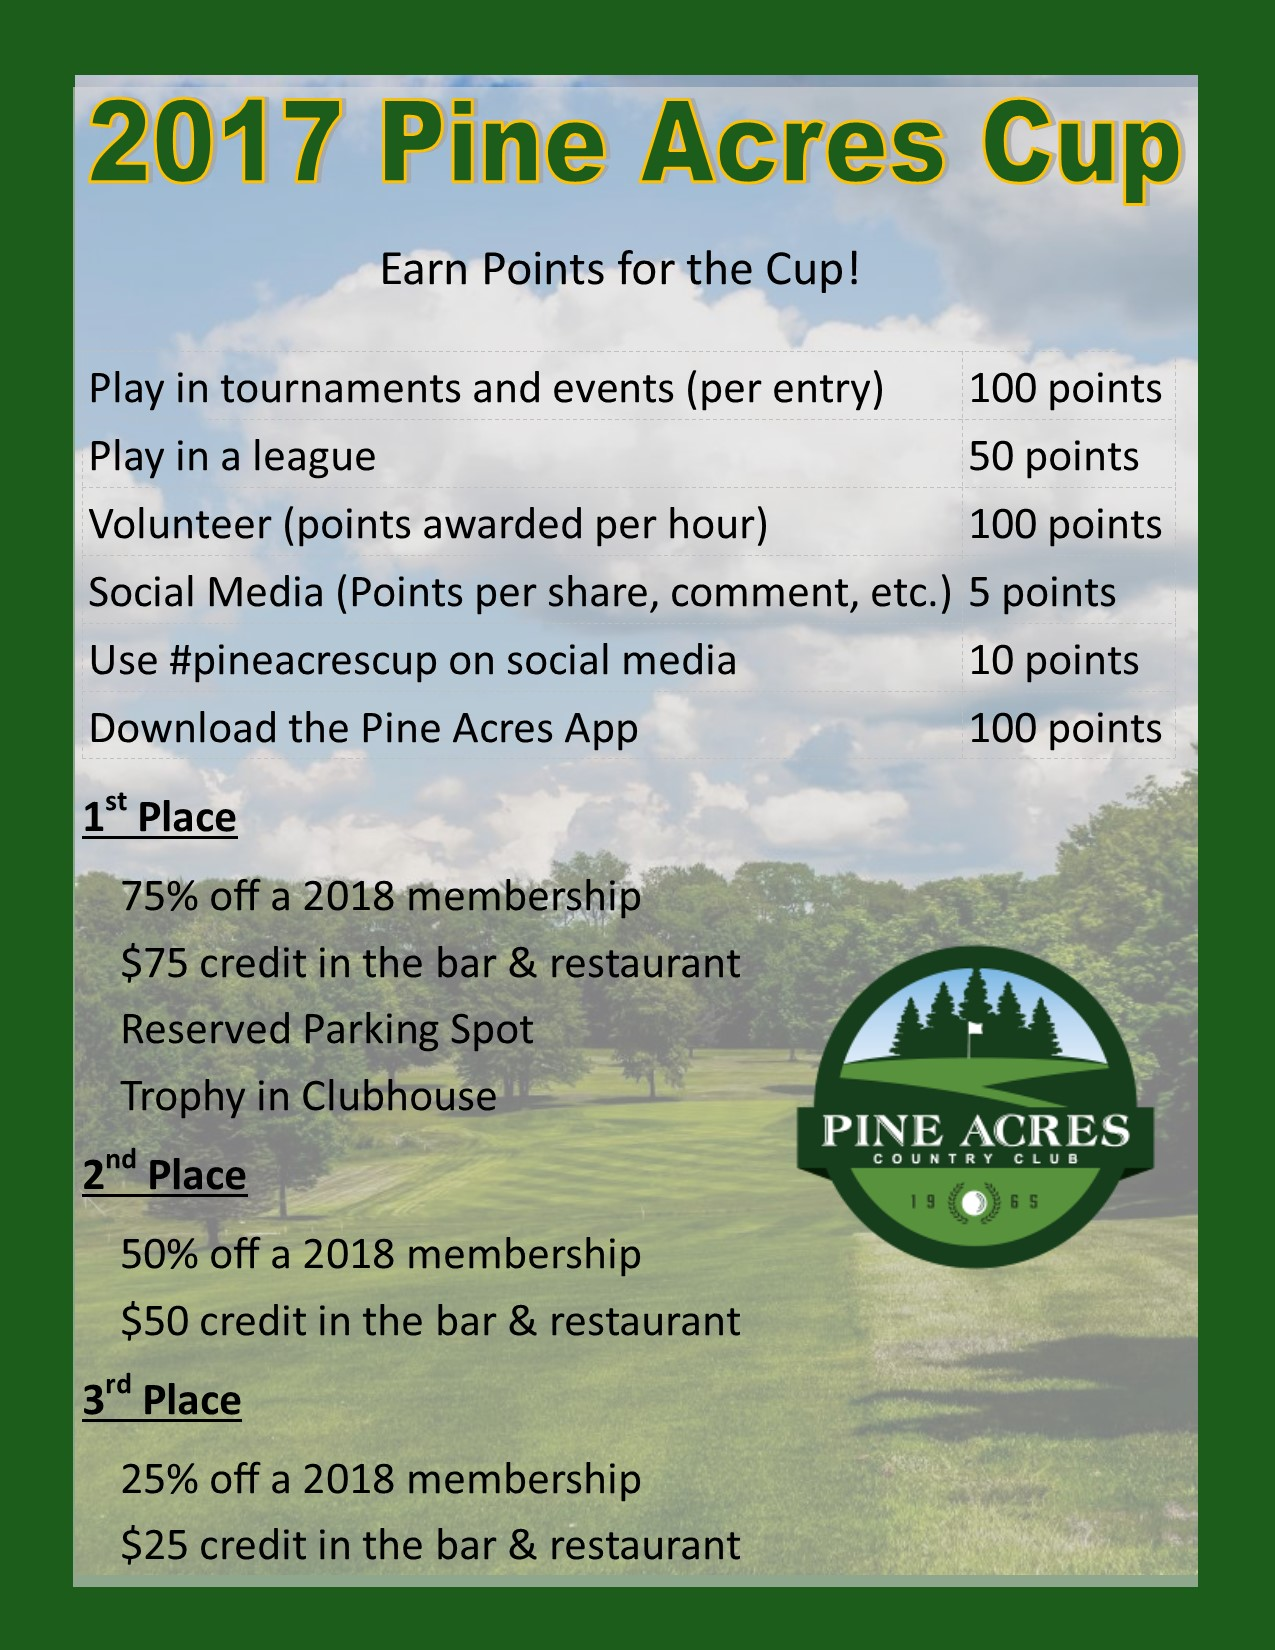 2017 Pine Acres Cup